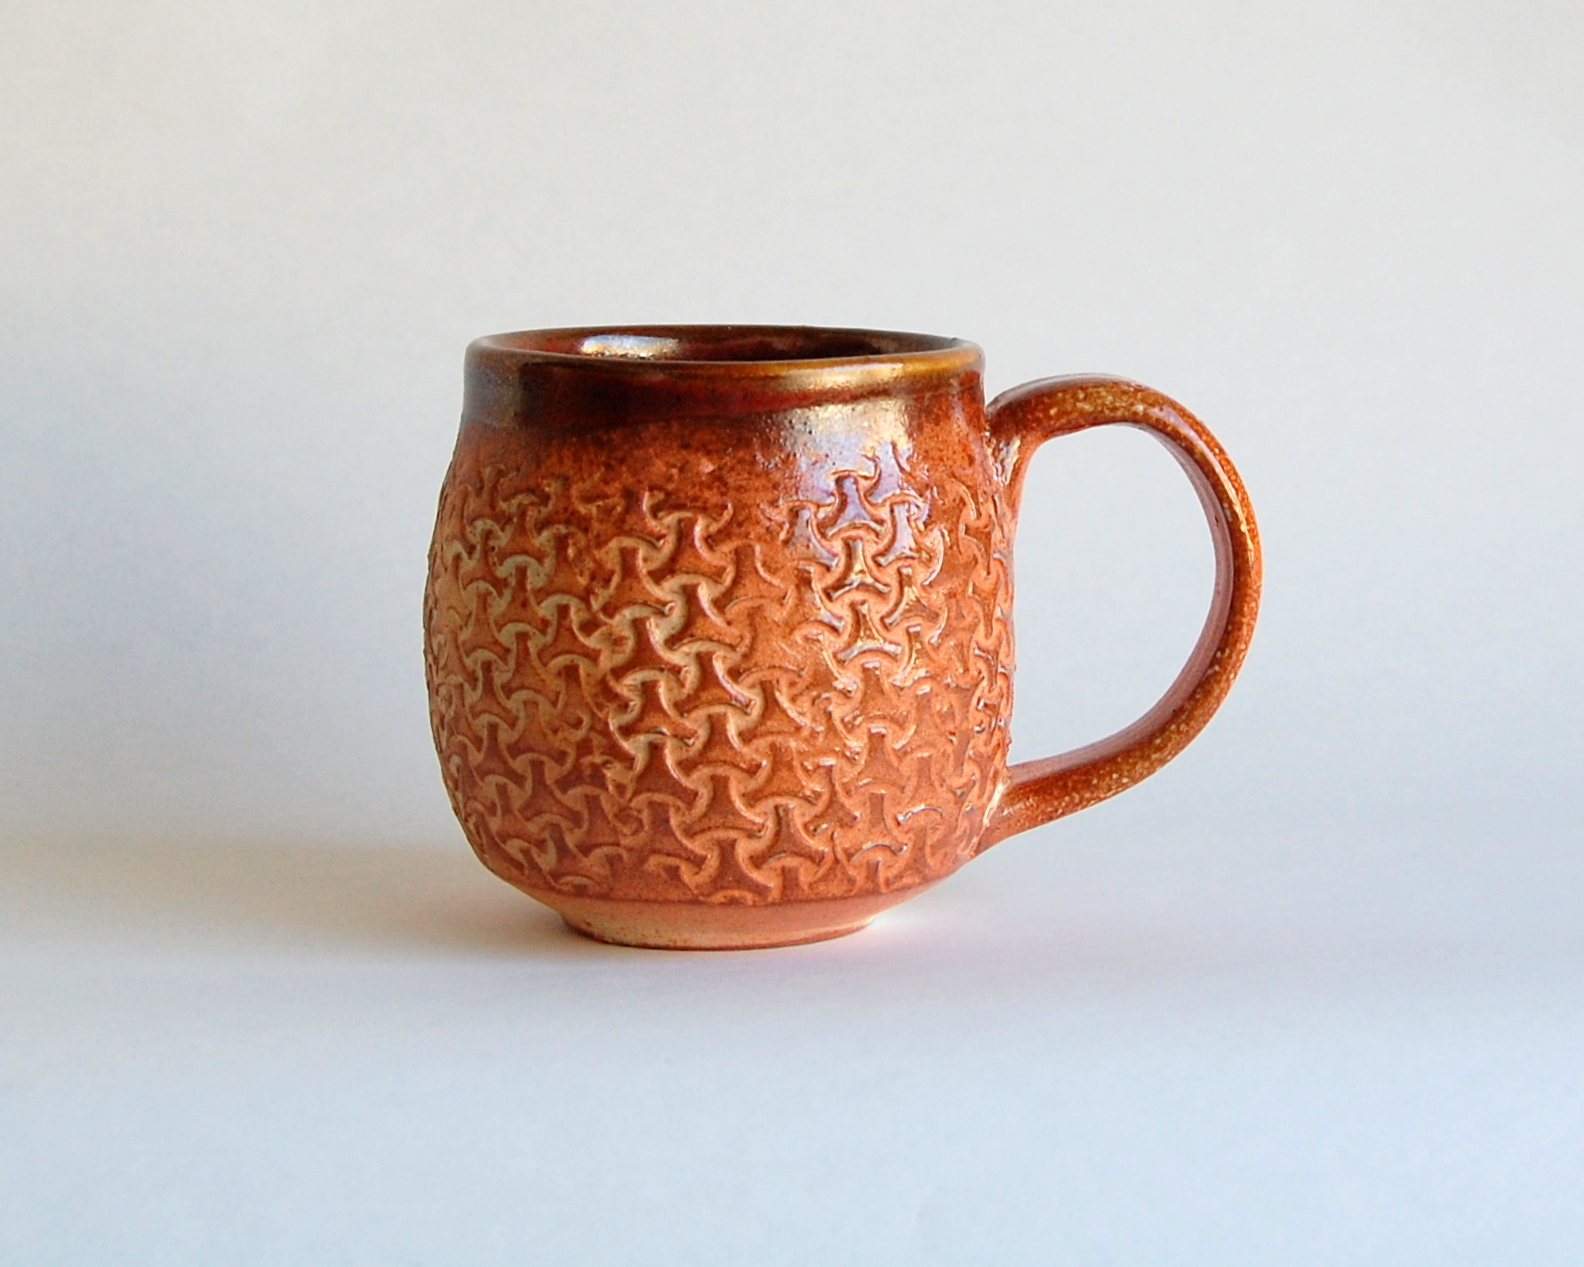 Orange and brown textured ceramic mug, hand made